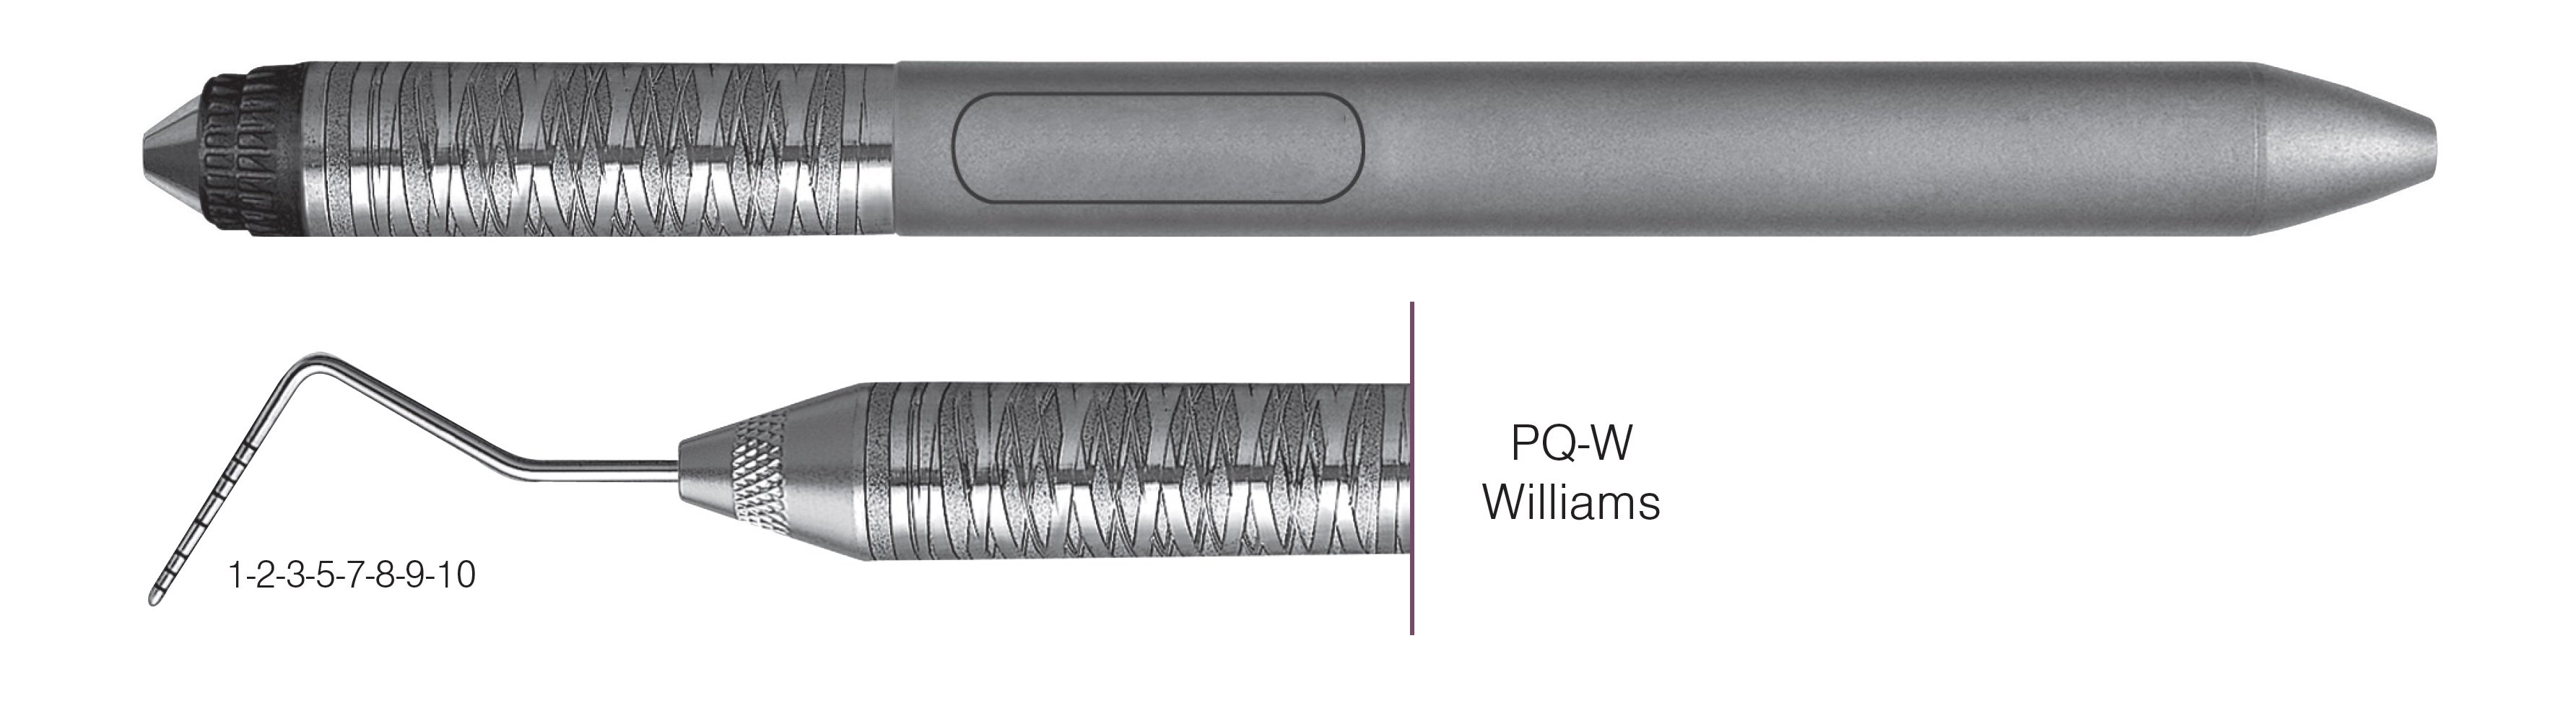 HF-PQW6-7, COLOR-CODED PROBES PQ-W Williams, Black markings, 1-2-3-5-7-8-9-10 mm, Handle Satin Steel Colours, Aluminum Titanium Nitride (AlTiN) coating, Single End